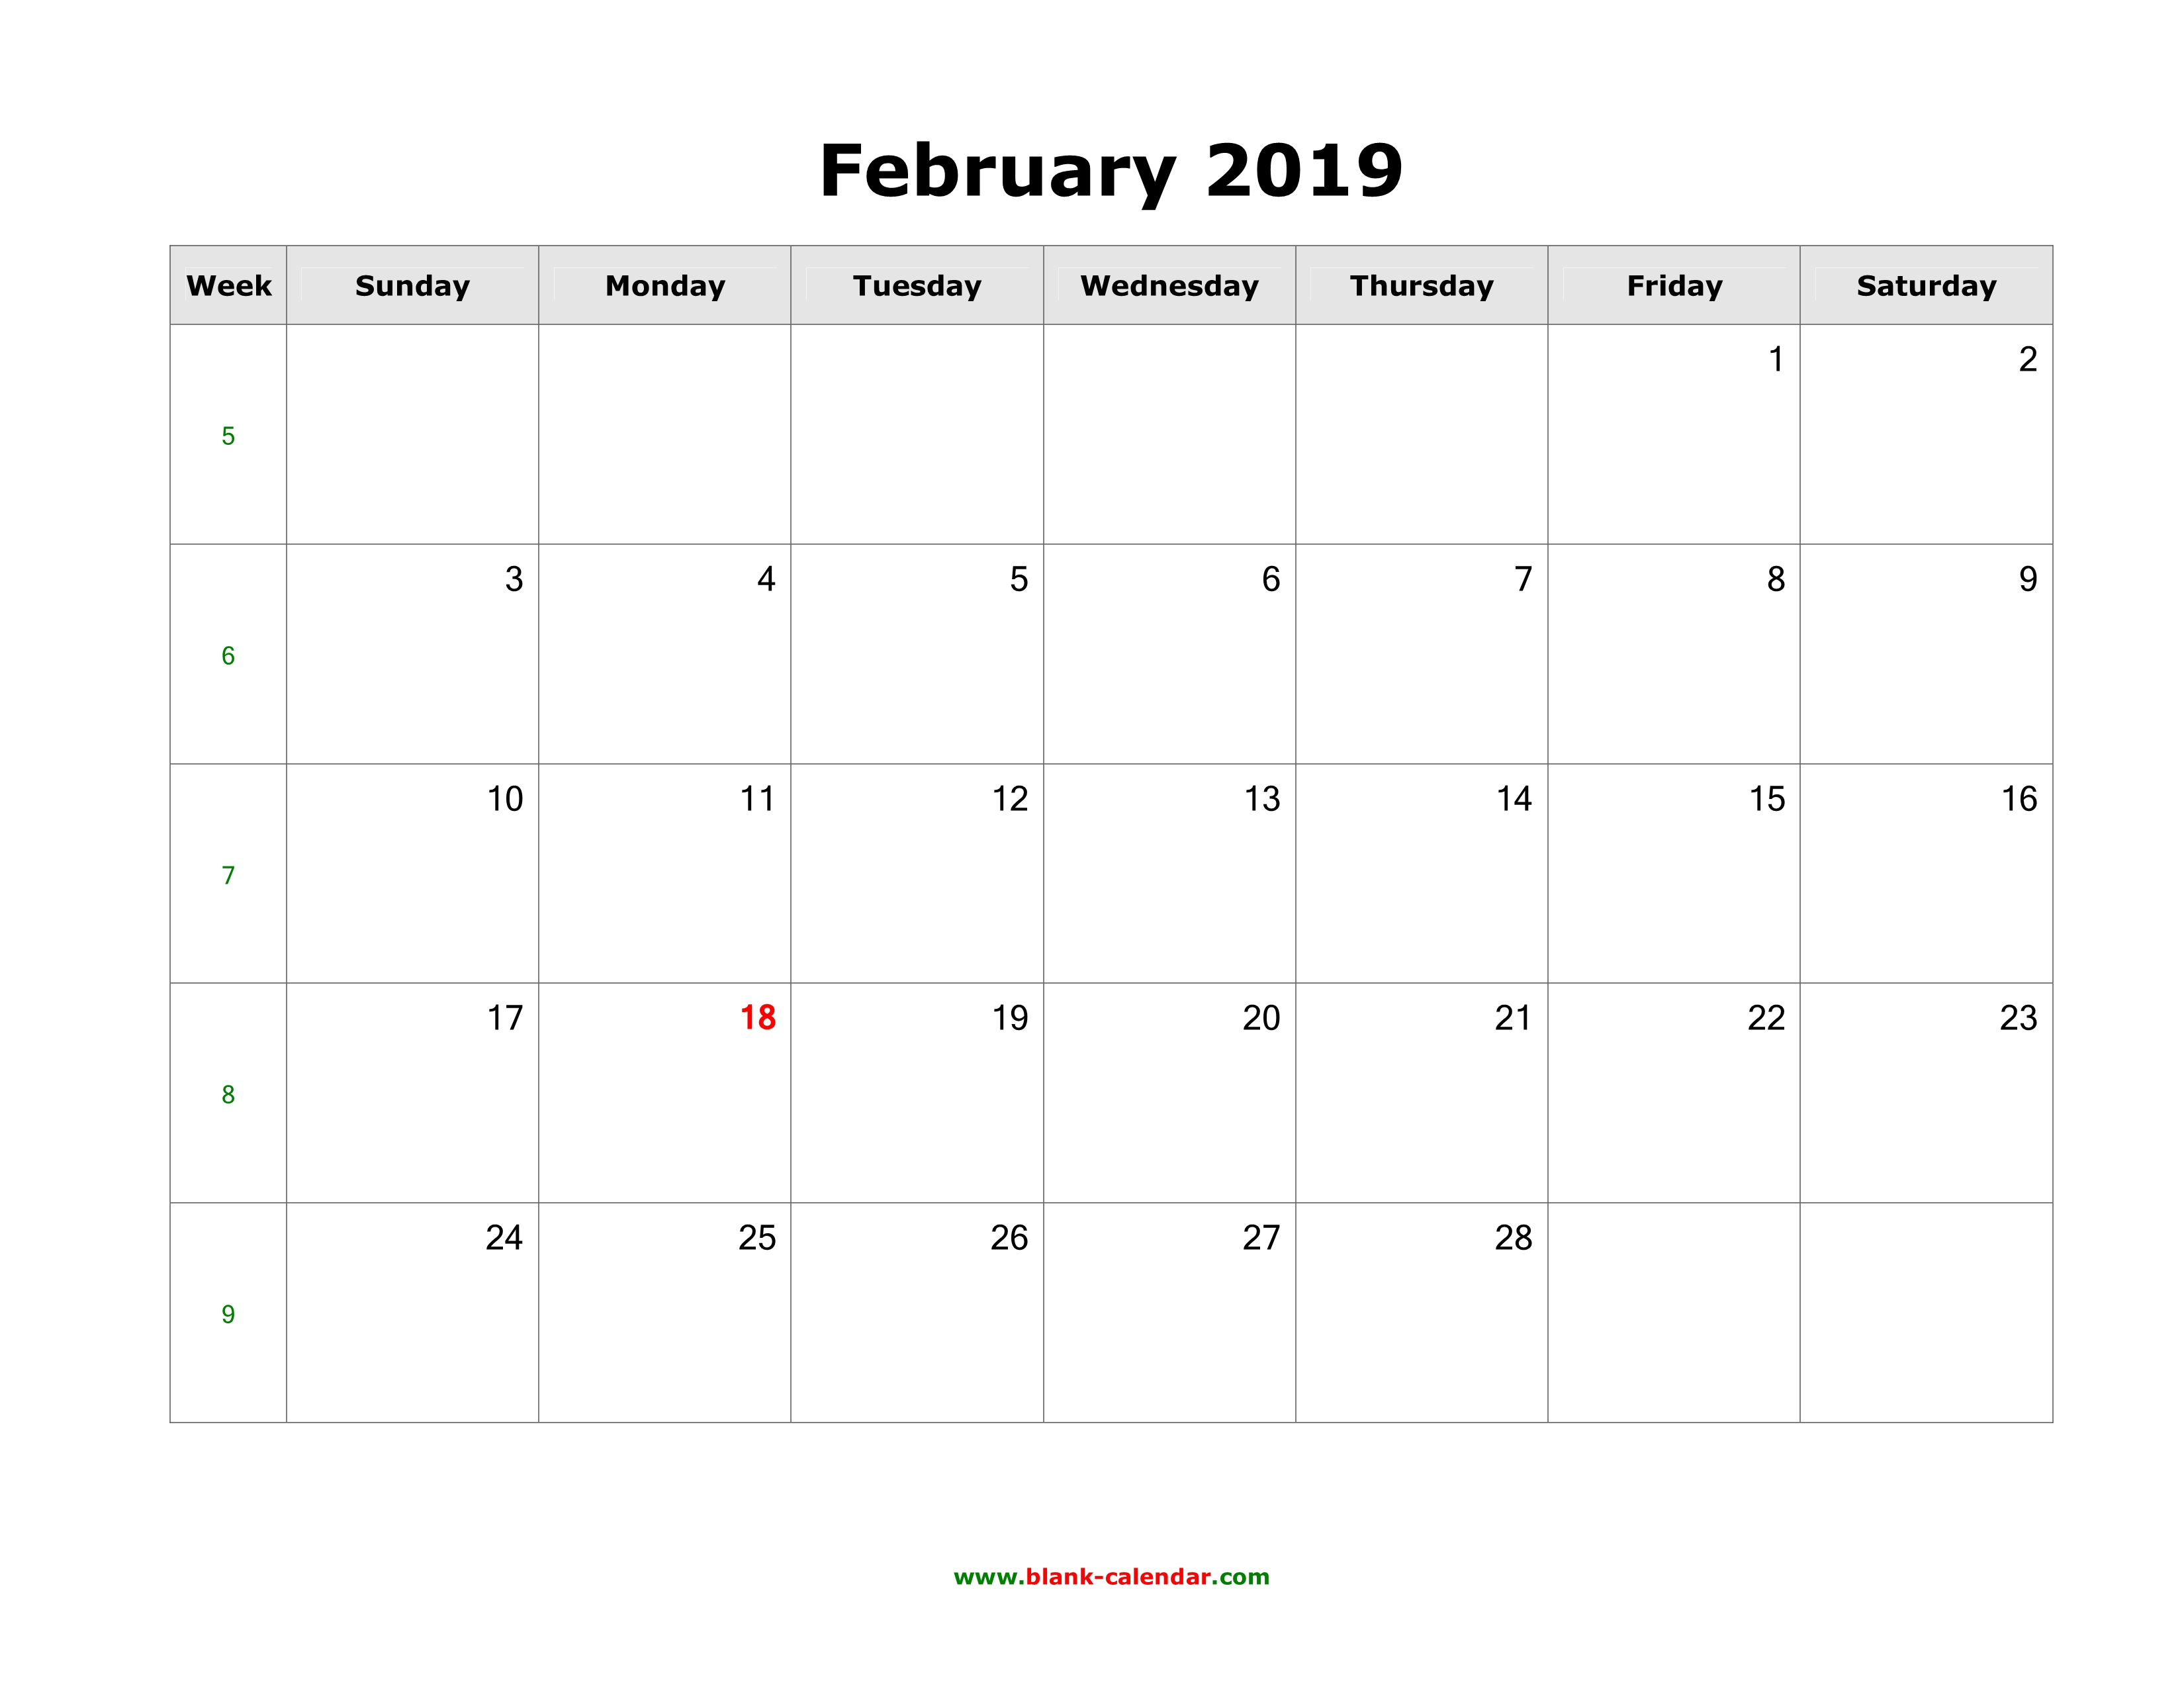 February 2019 Calendar Dates Download February 2019 Blank Calendar (horizontal)